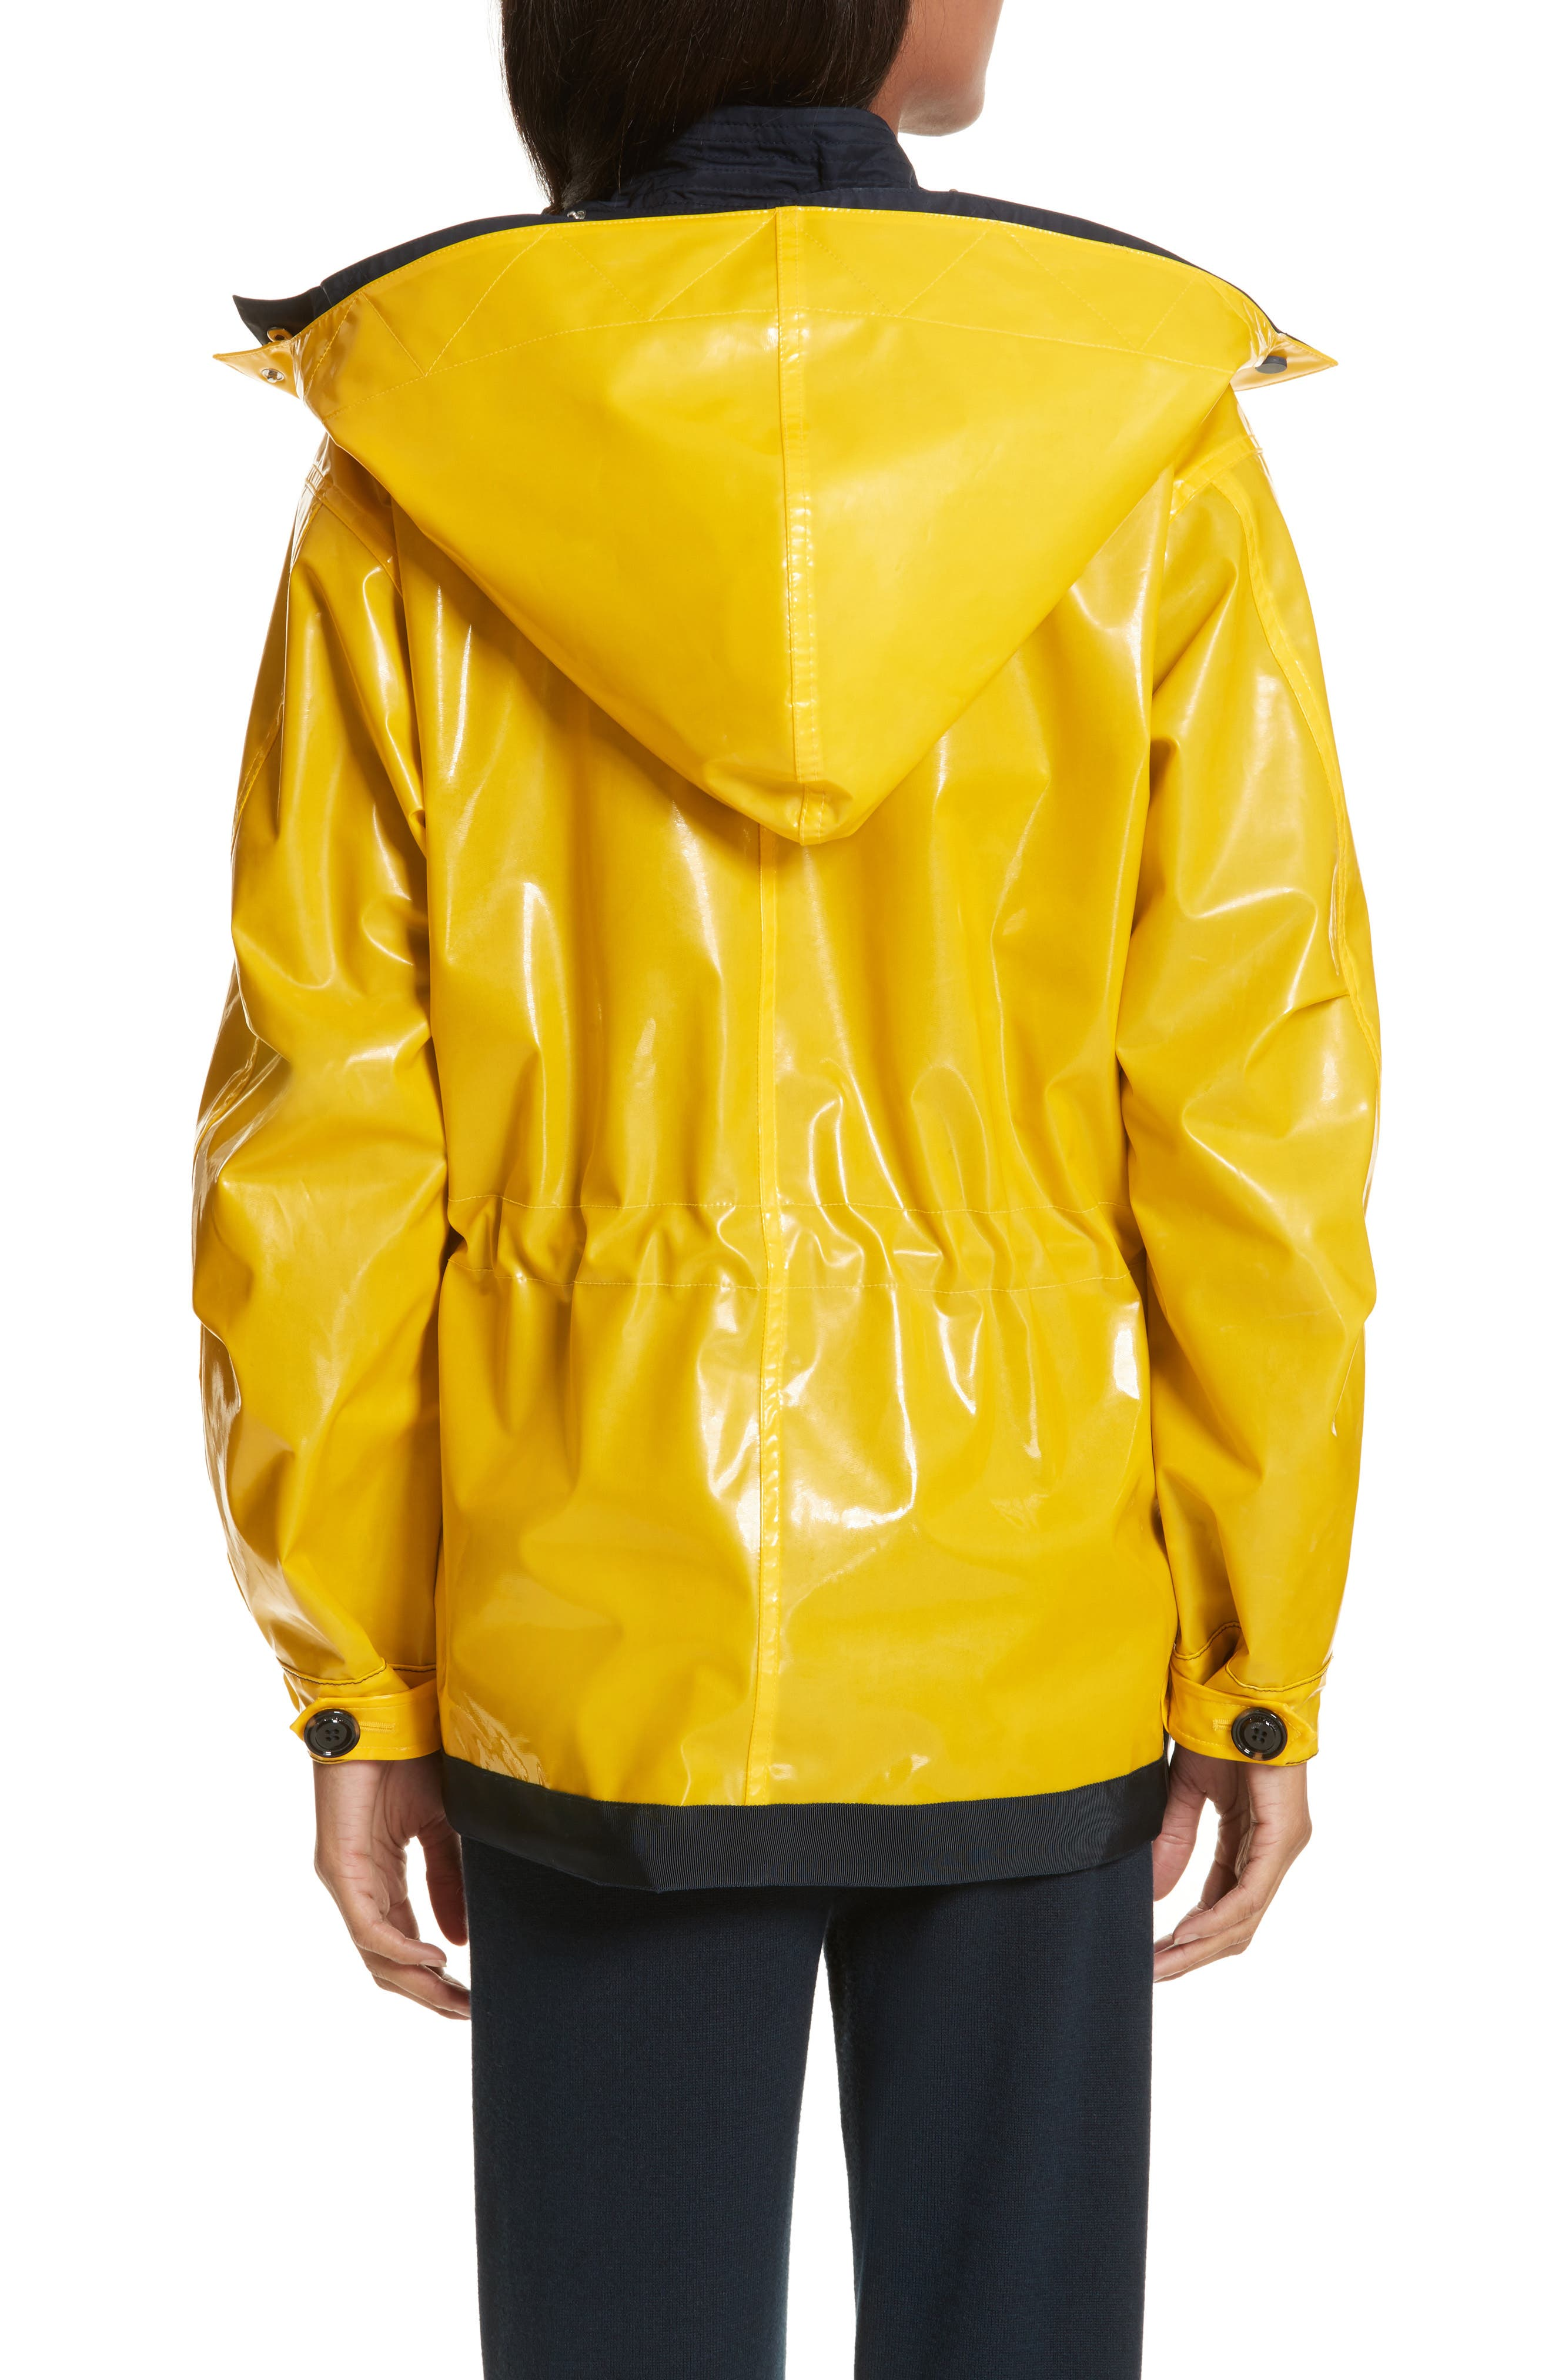 Reversible Rain Jacket,                             Alternate thumbnail 3, color,                             Tory Navy/ Cyber Yellow